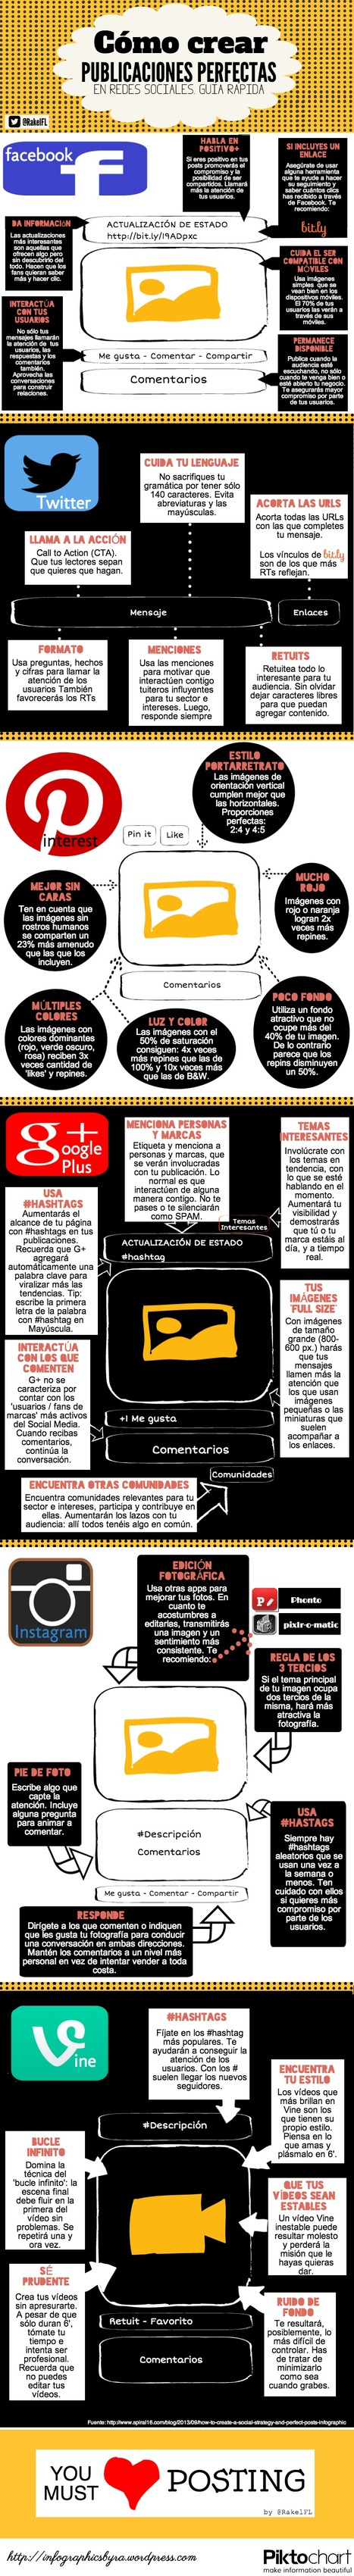 Guía rápida: cómo crear publicaciones perfectas #INFOGRAFÍA | Marketing Digital - Social Media | Scoop.it